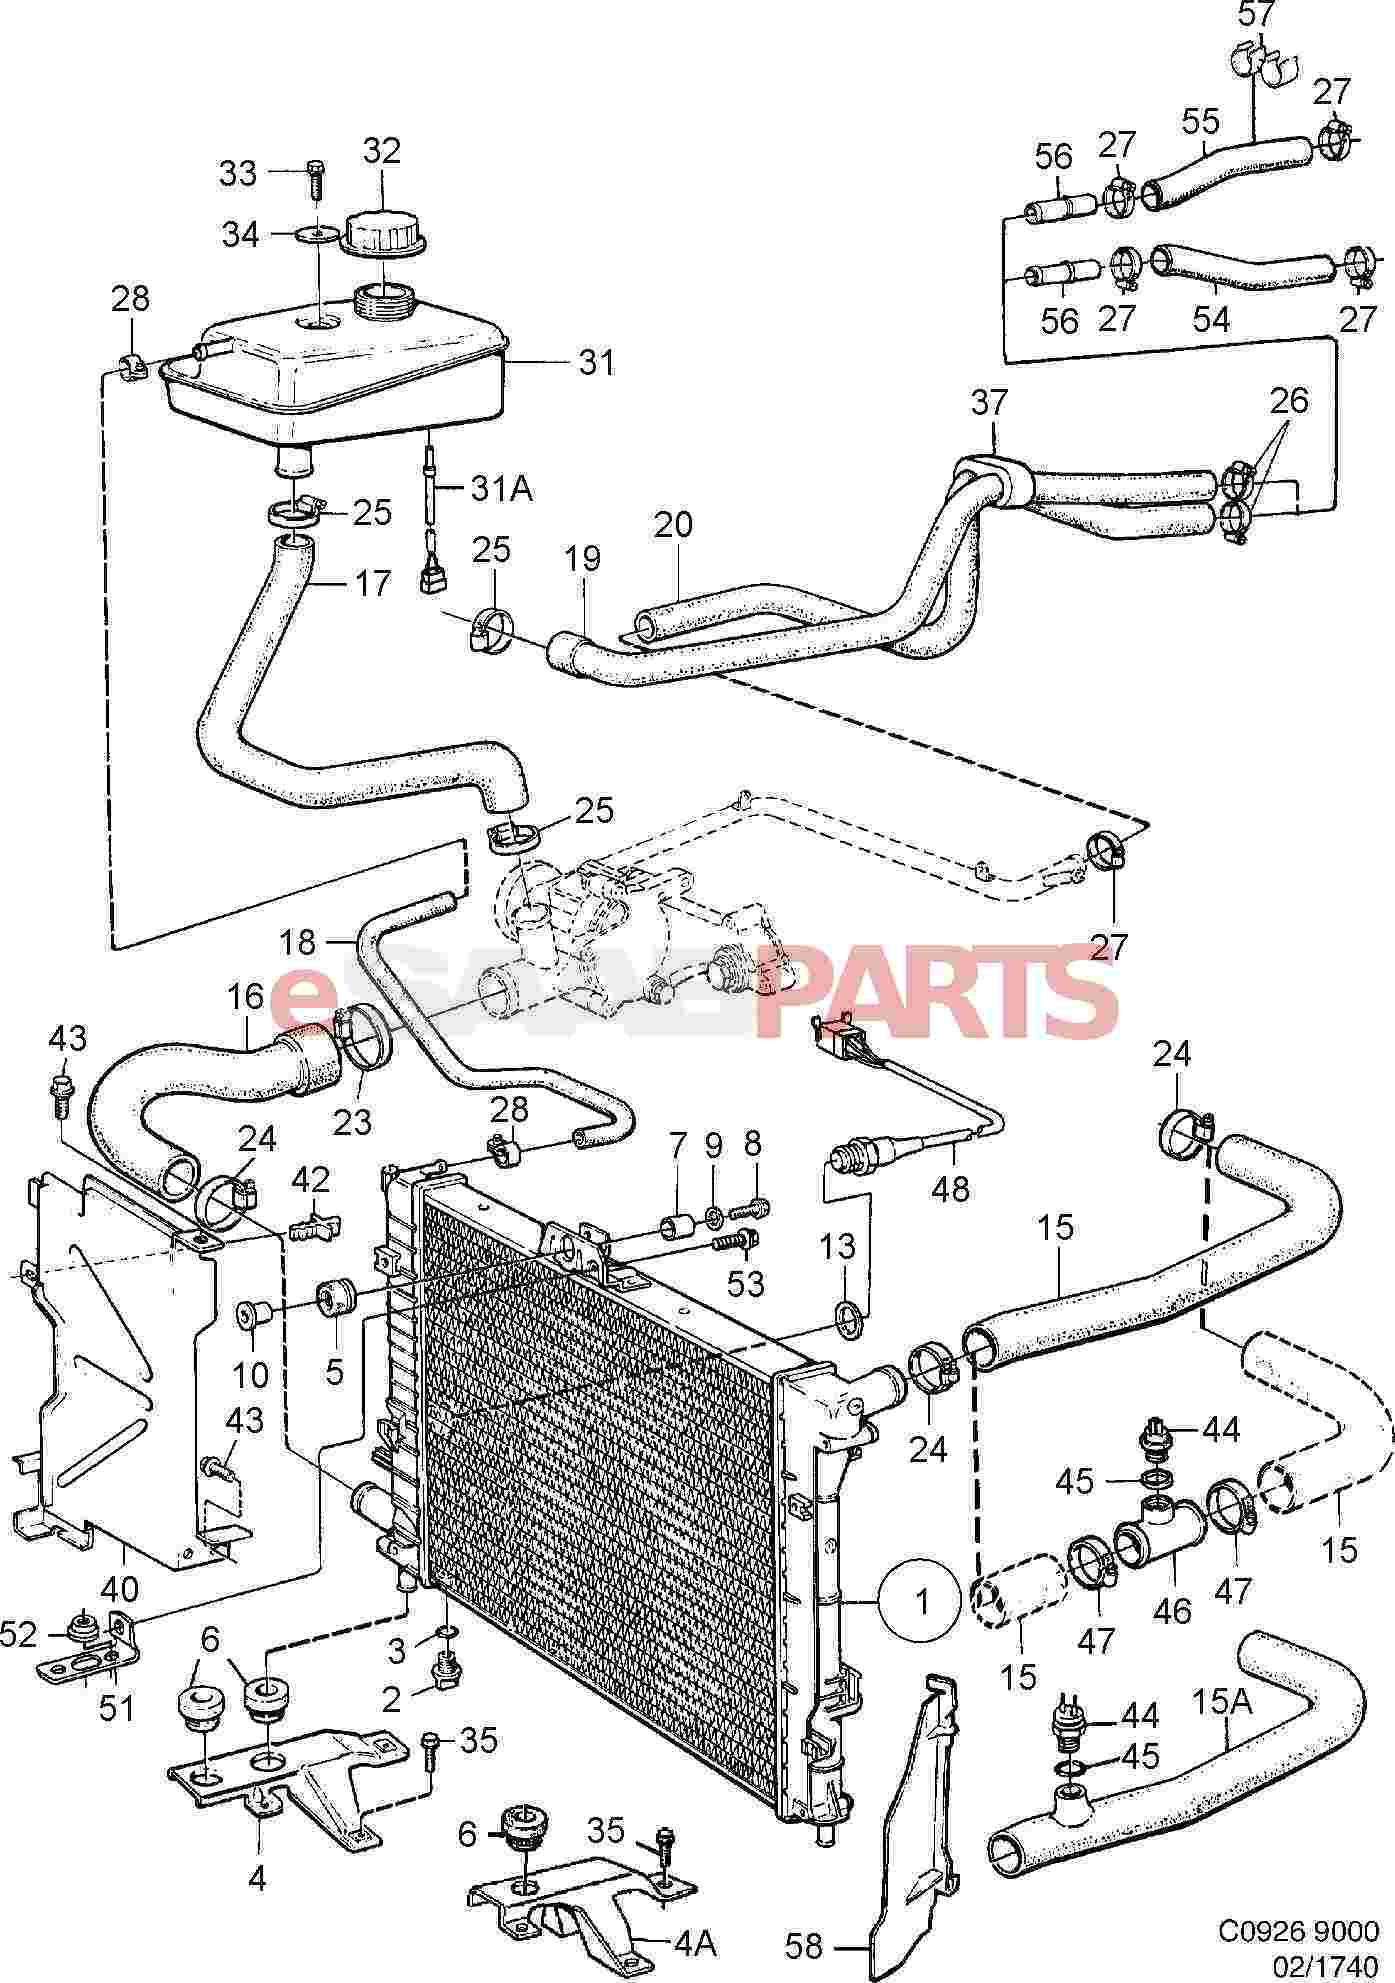 [4395570] saab cap coolant expansion tank - genuine saab ... bmw engine cooling diagram